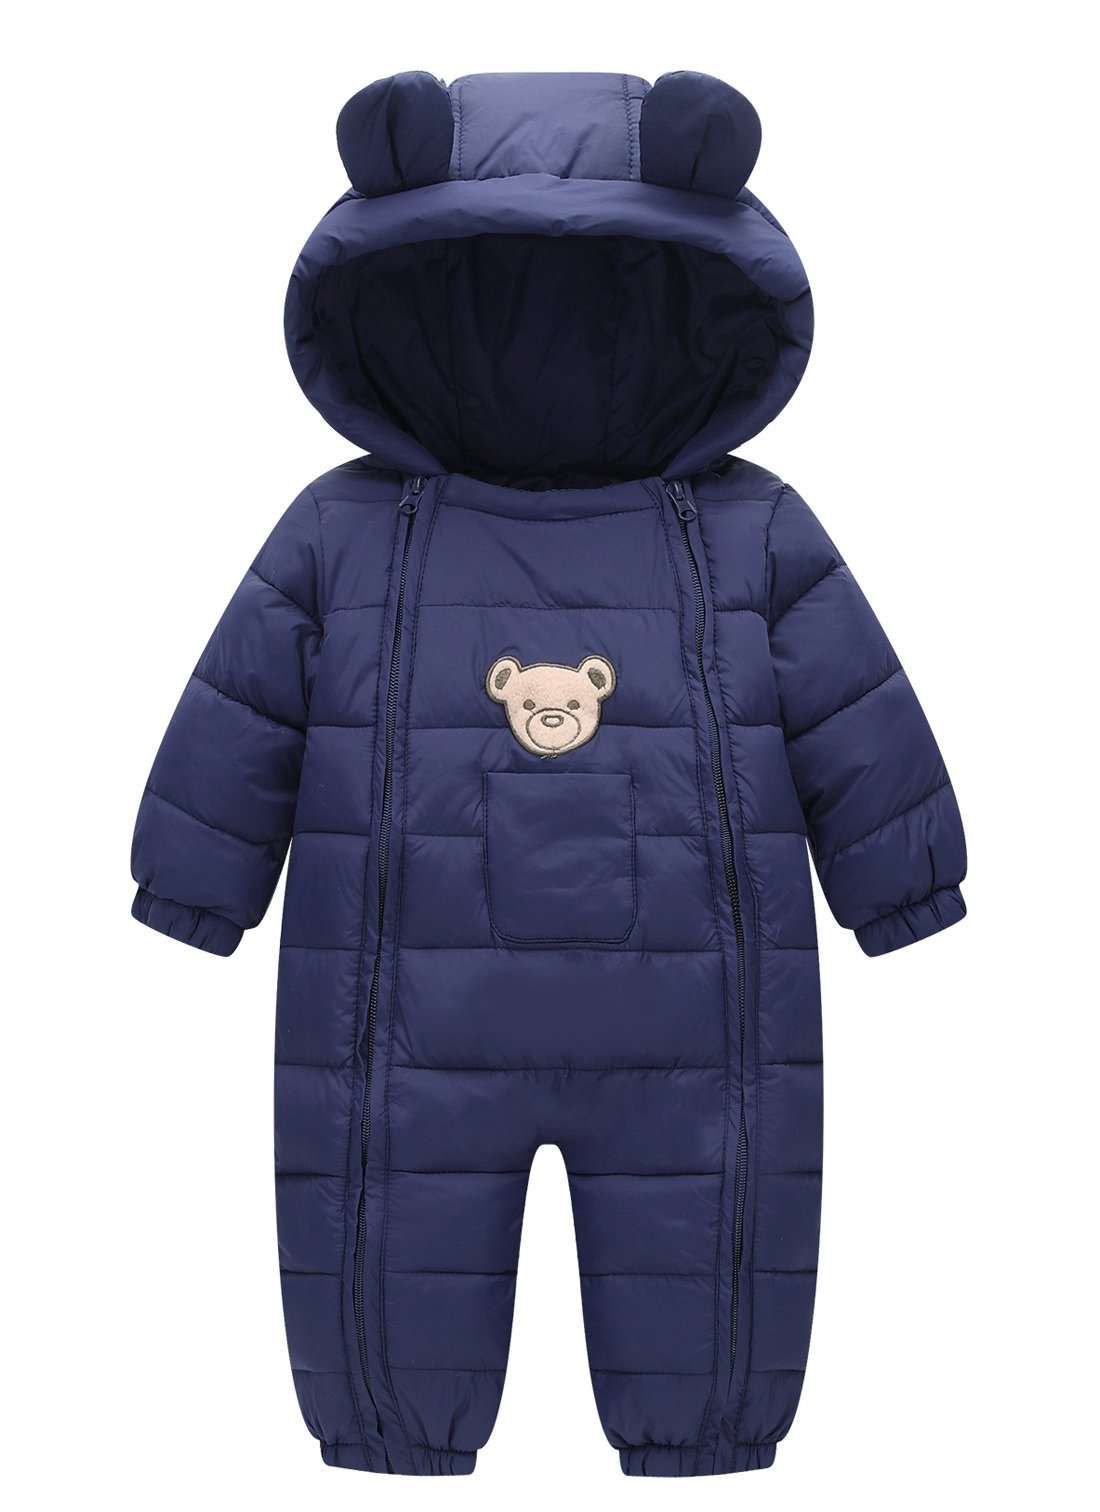 Happy Cherry Baby Cotton Clothes Down Jacket Jumpsuits Infant Crawling Clothes Dark Blue 3-9 Months by Happy Cherry